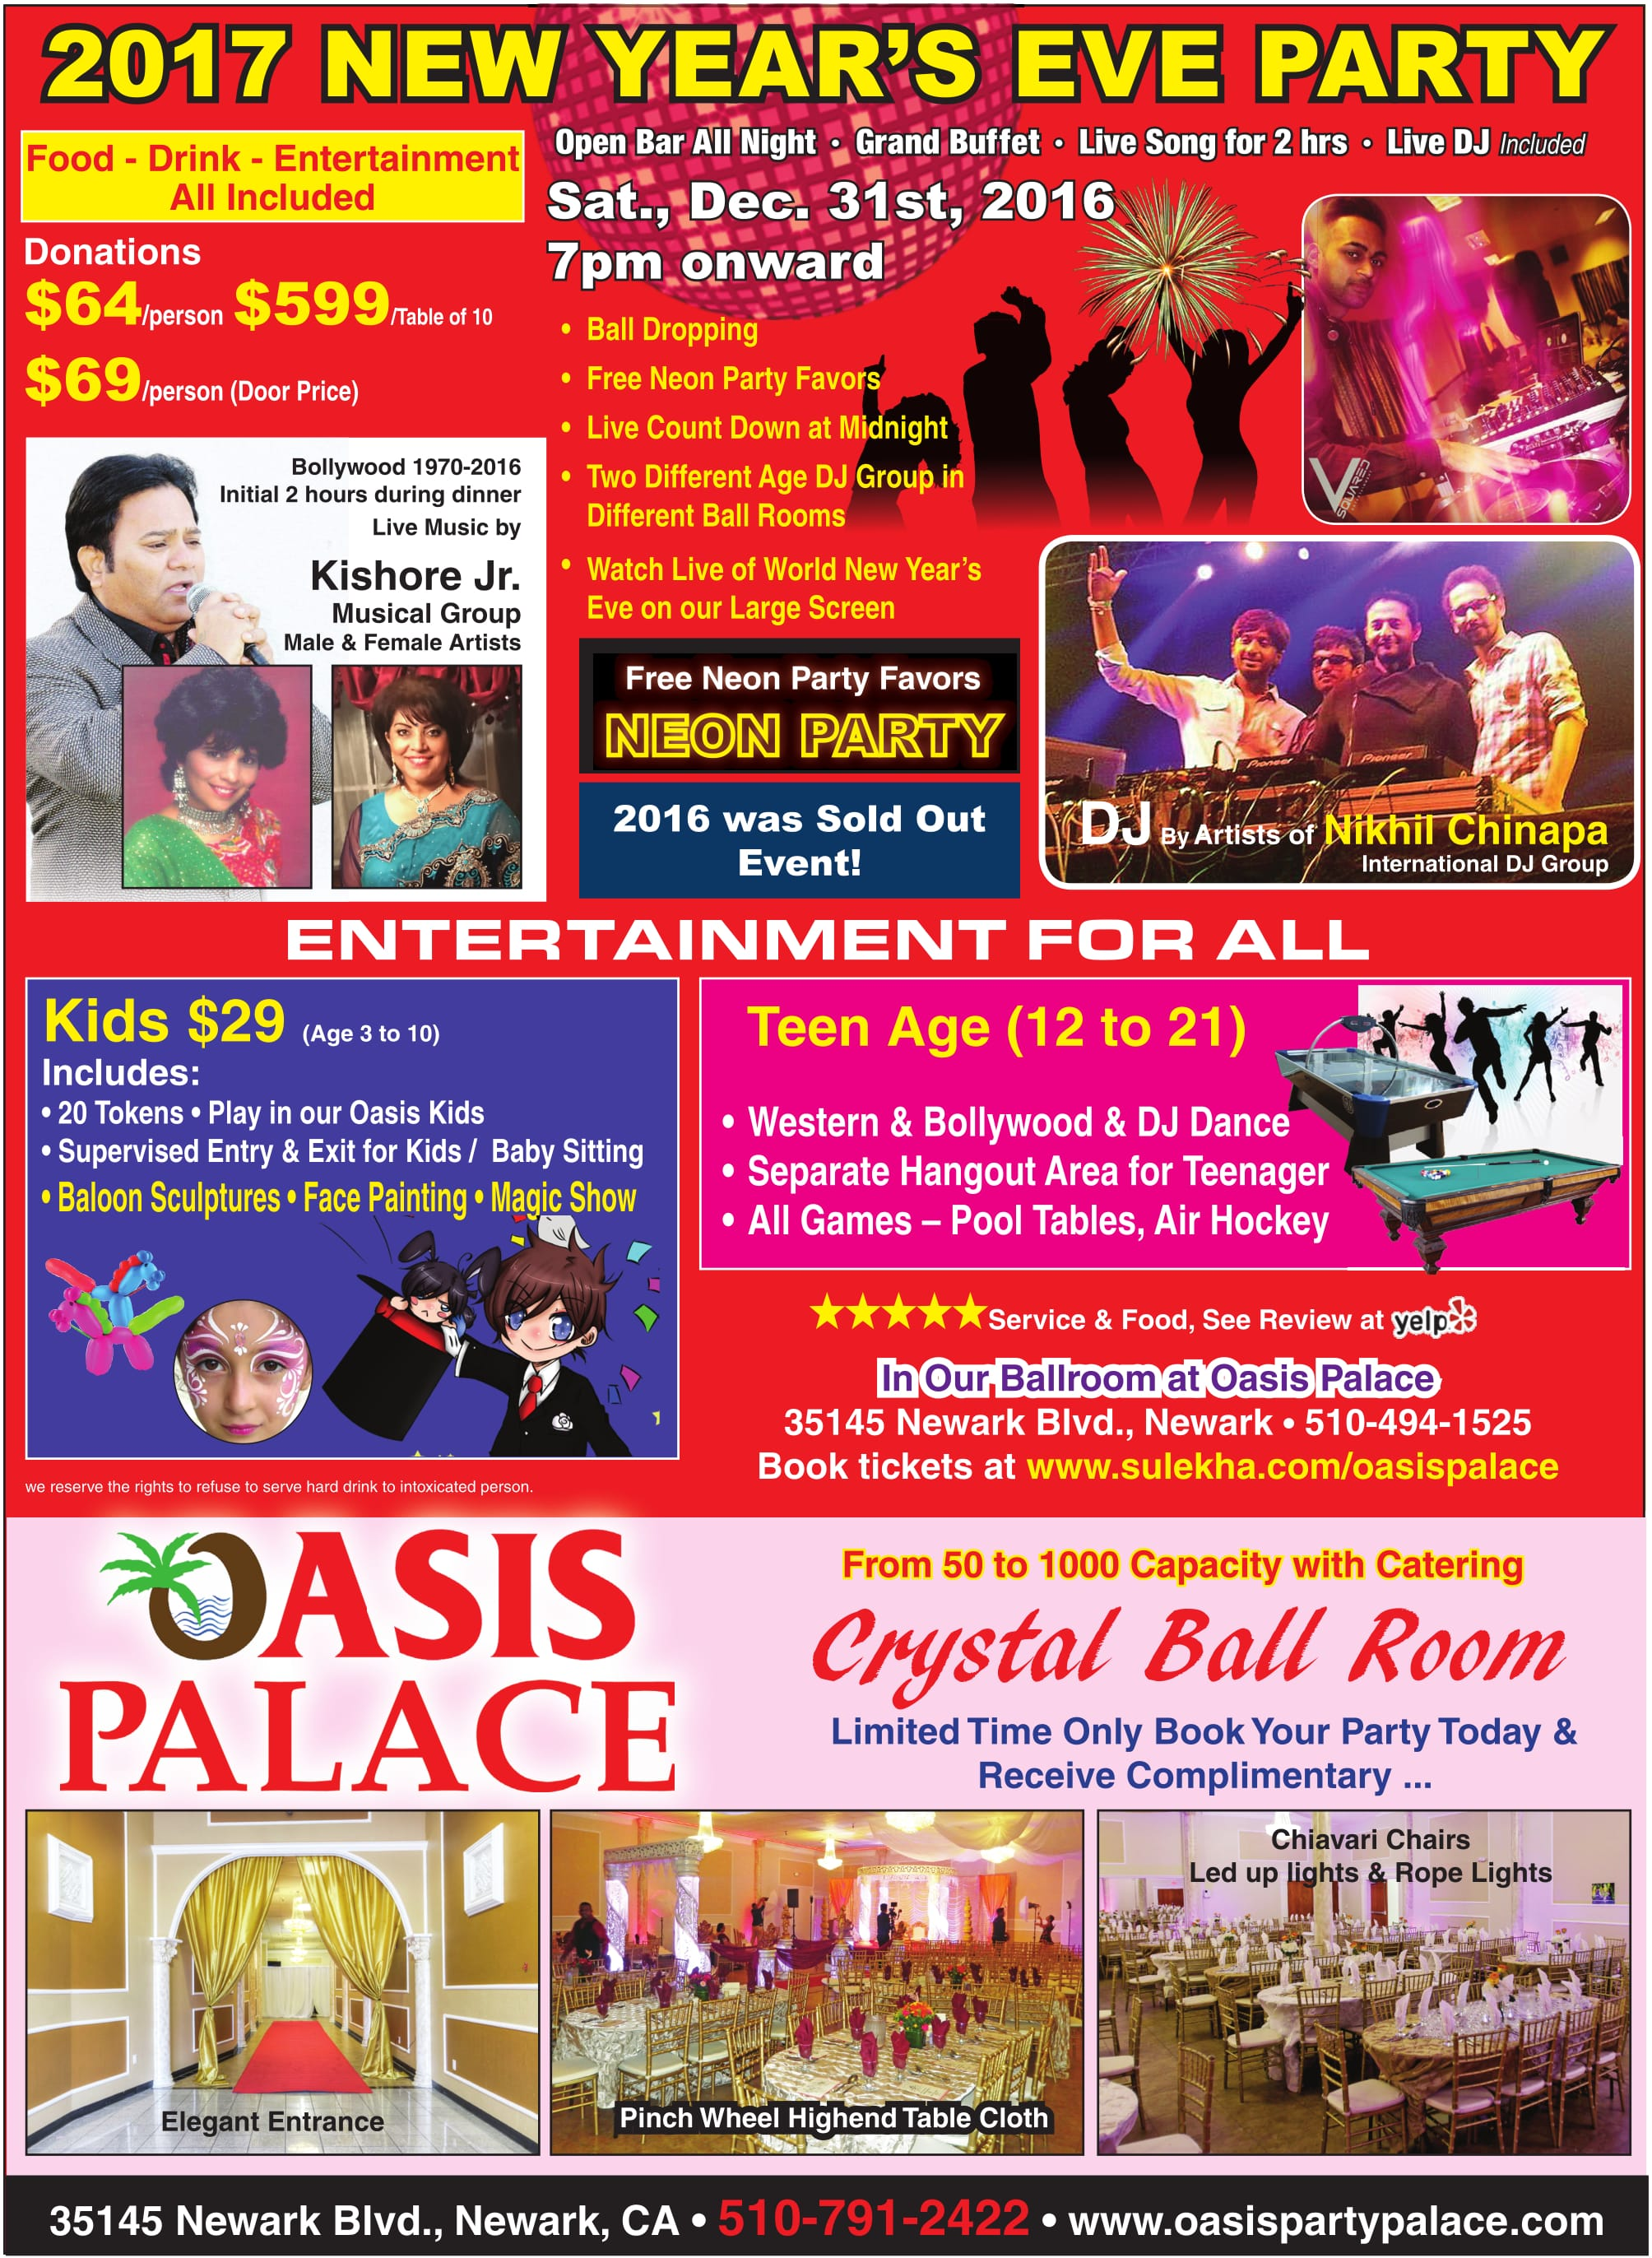 Oasis Palace - Desi New Year's Eve Neon Party 2017